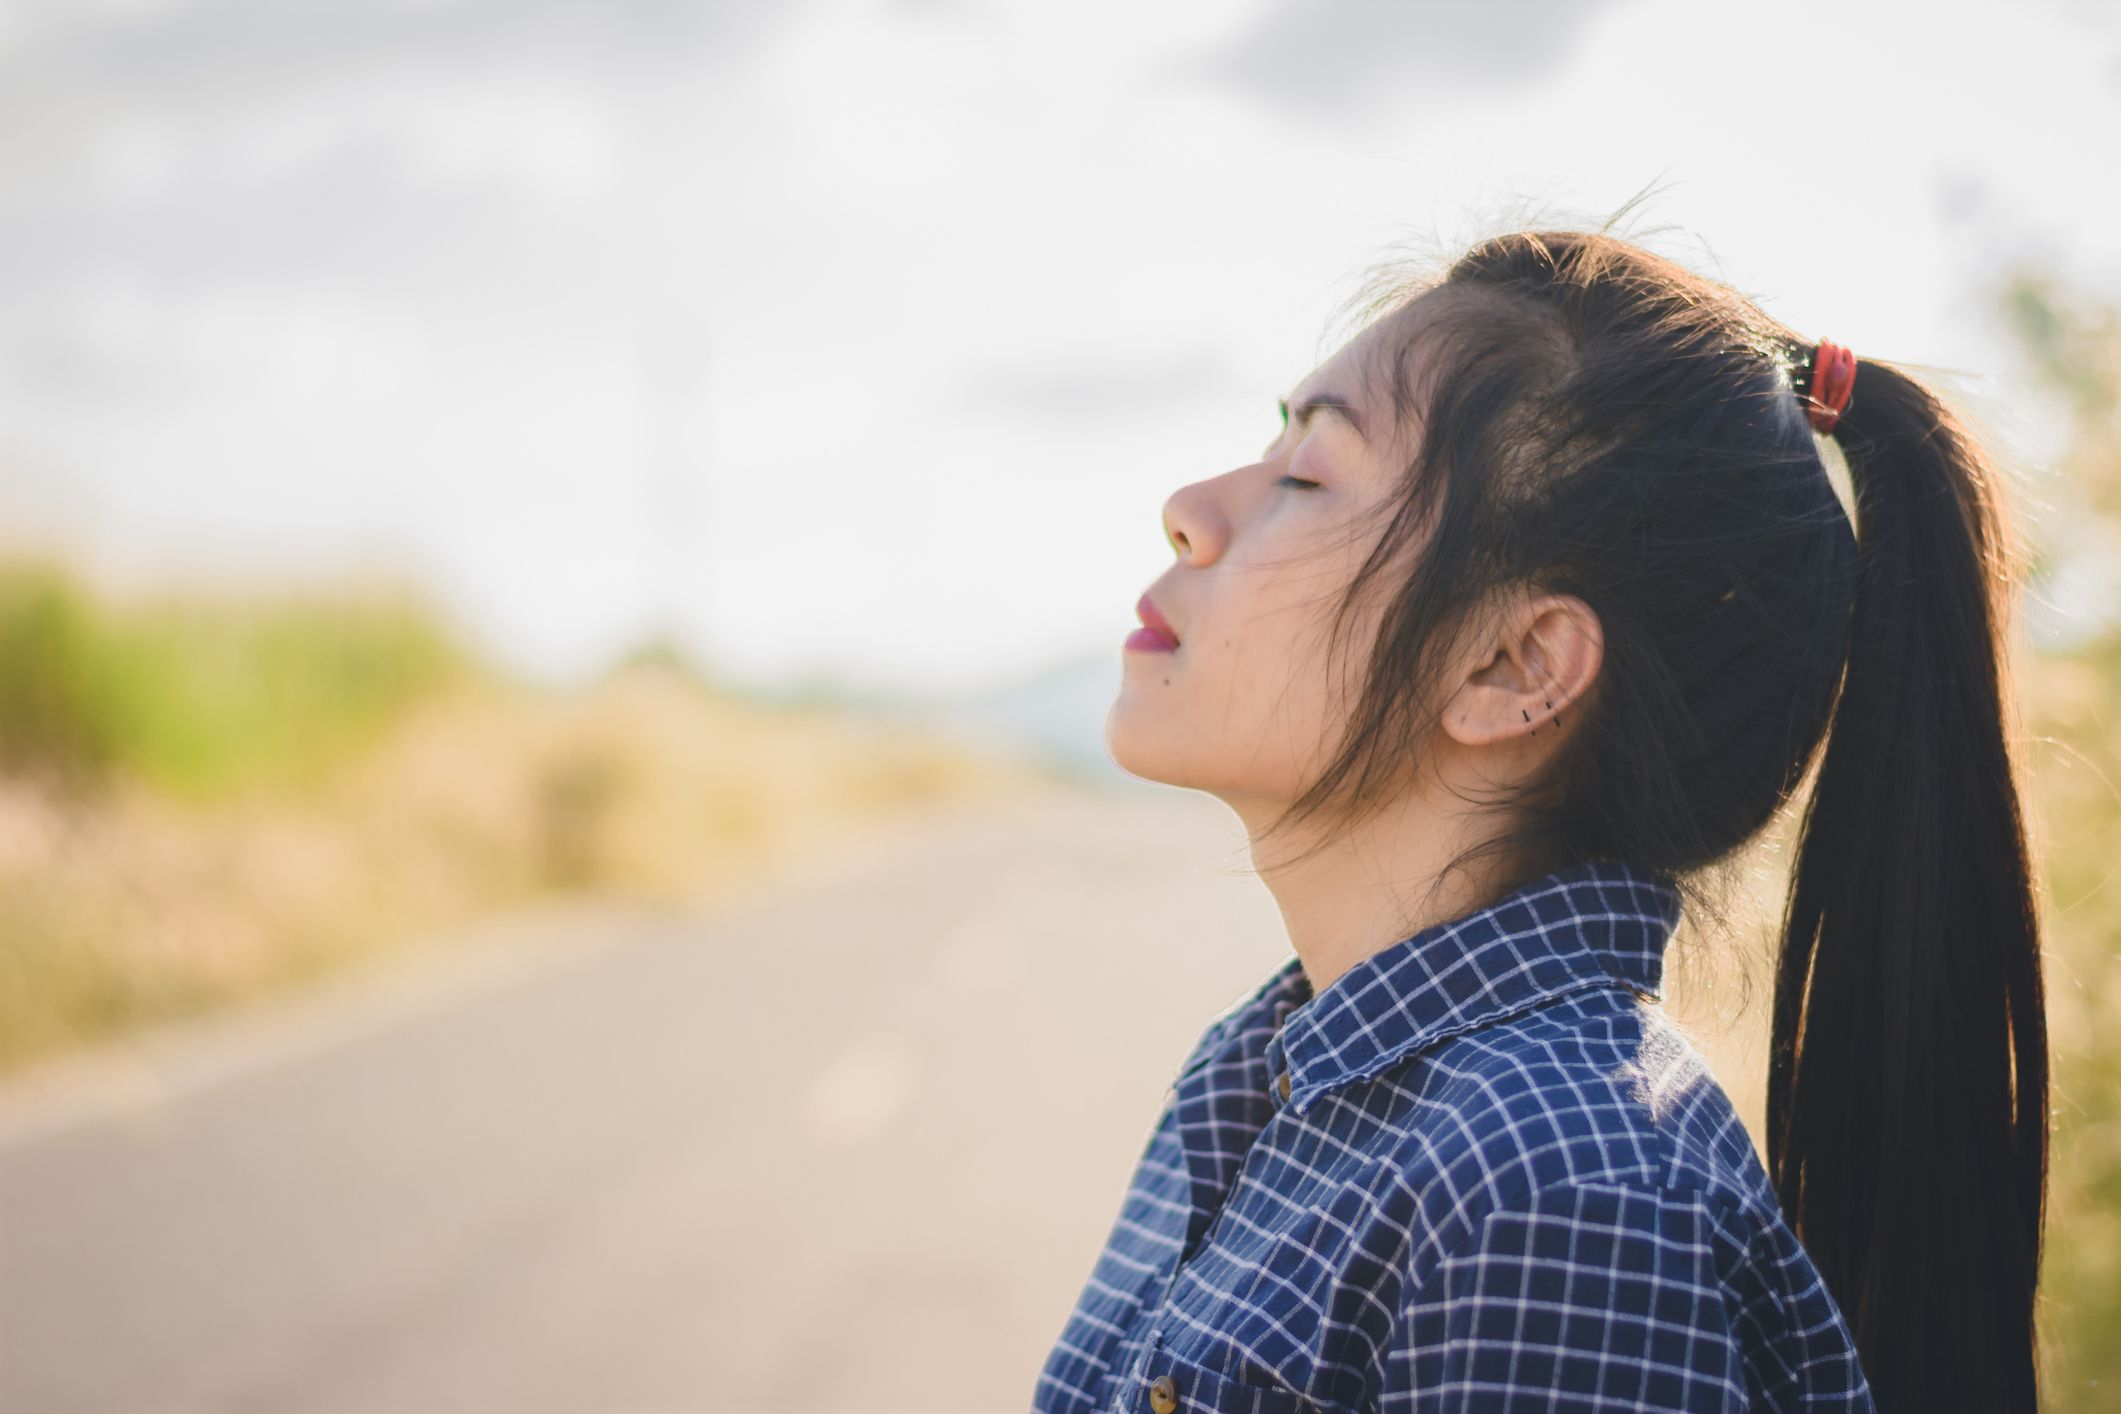 9 Things That Stop the Anxiety - Breathe